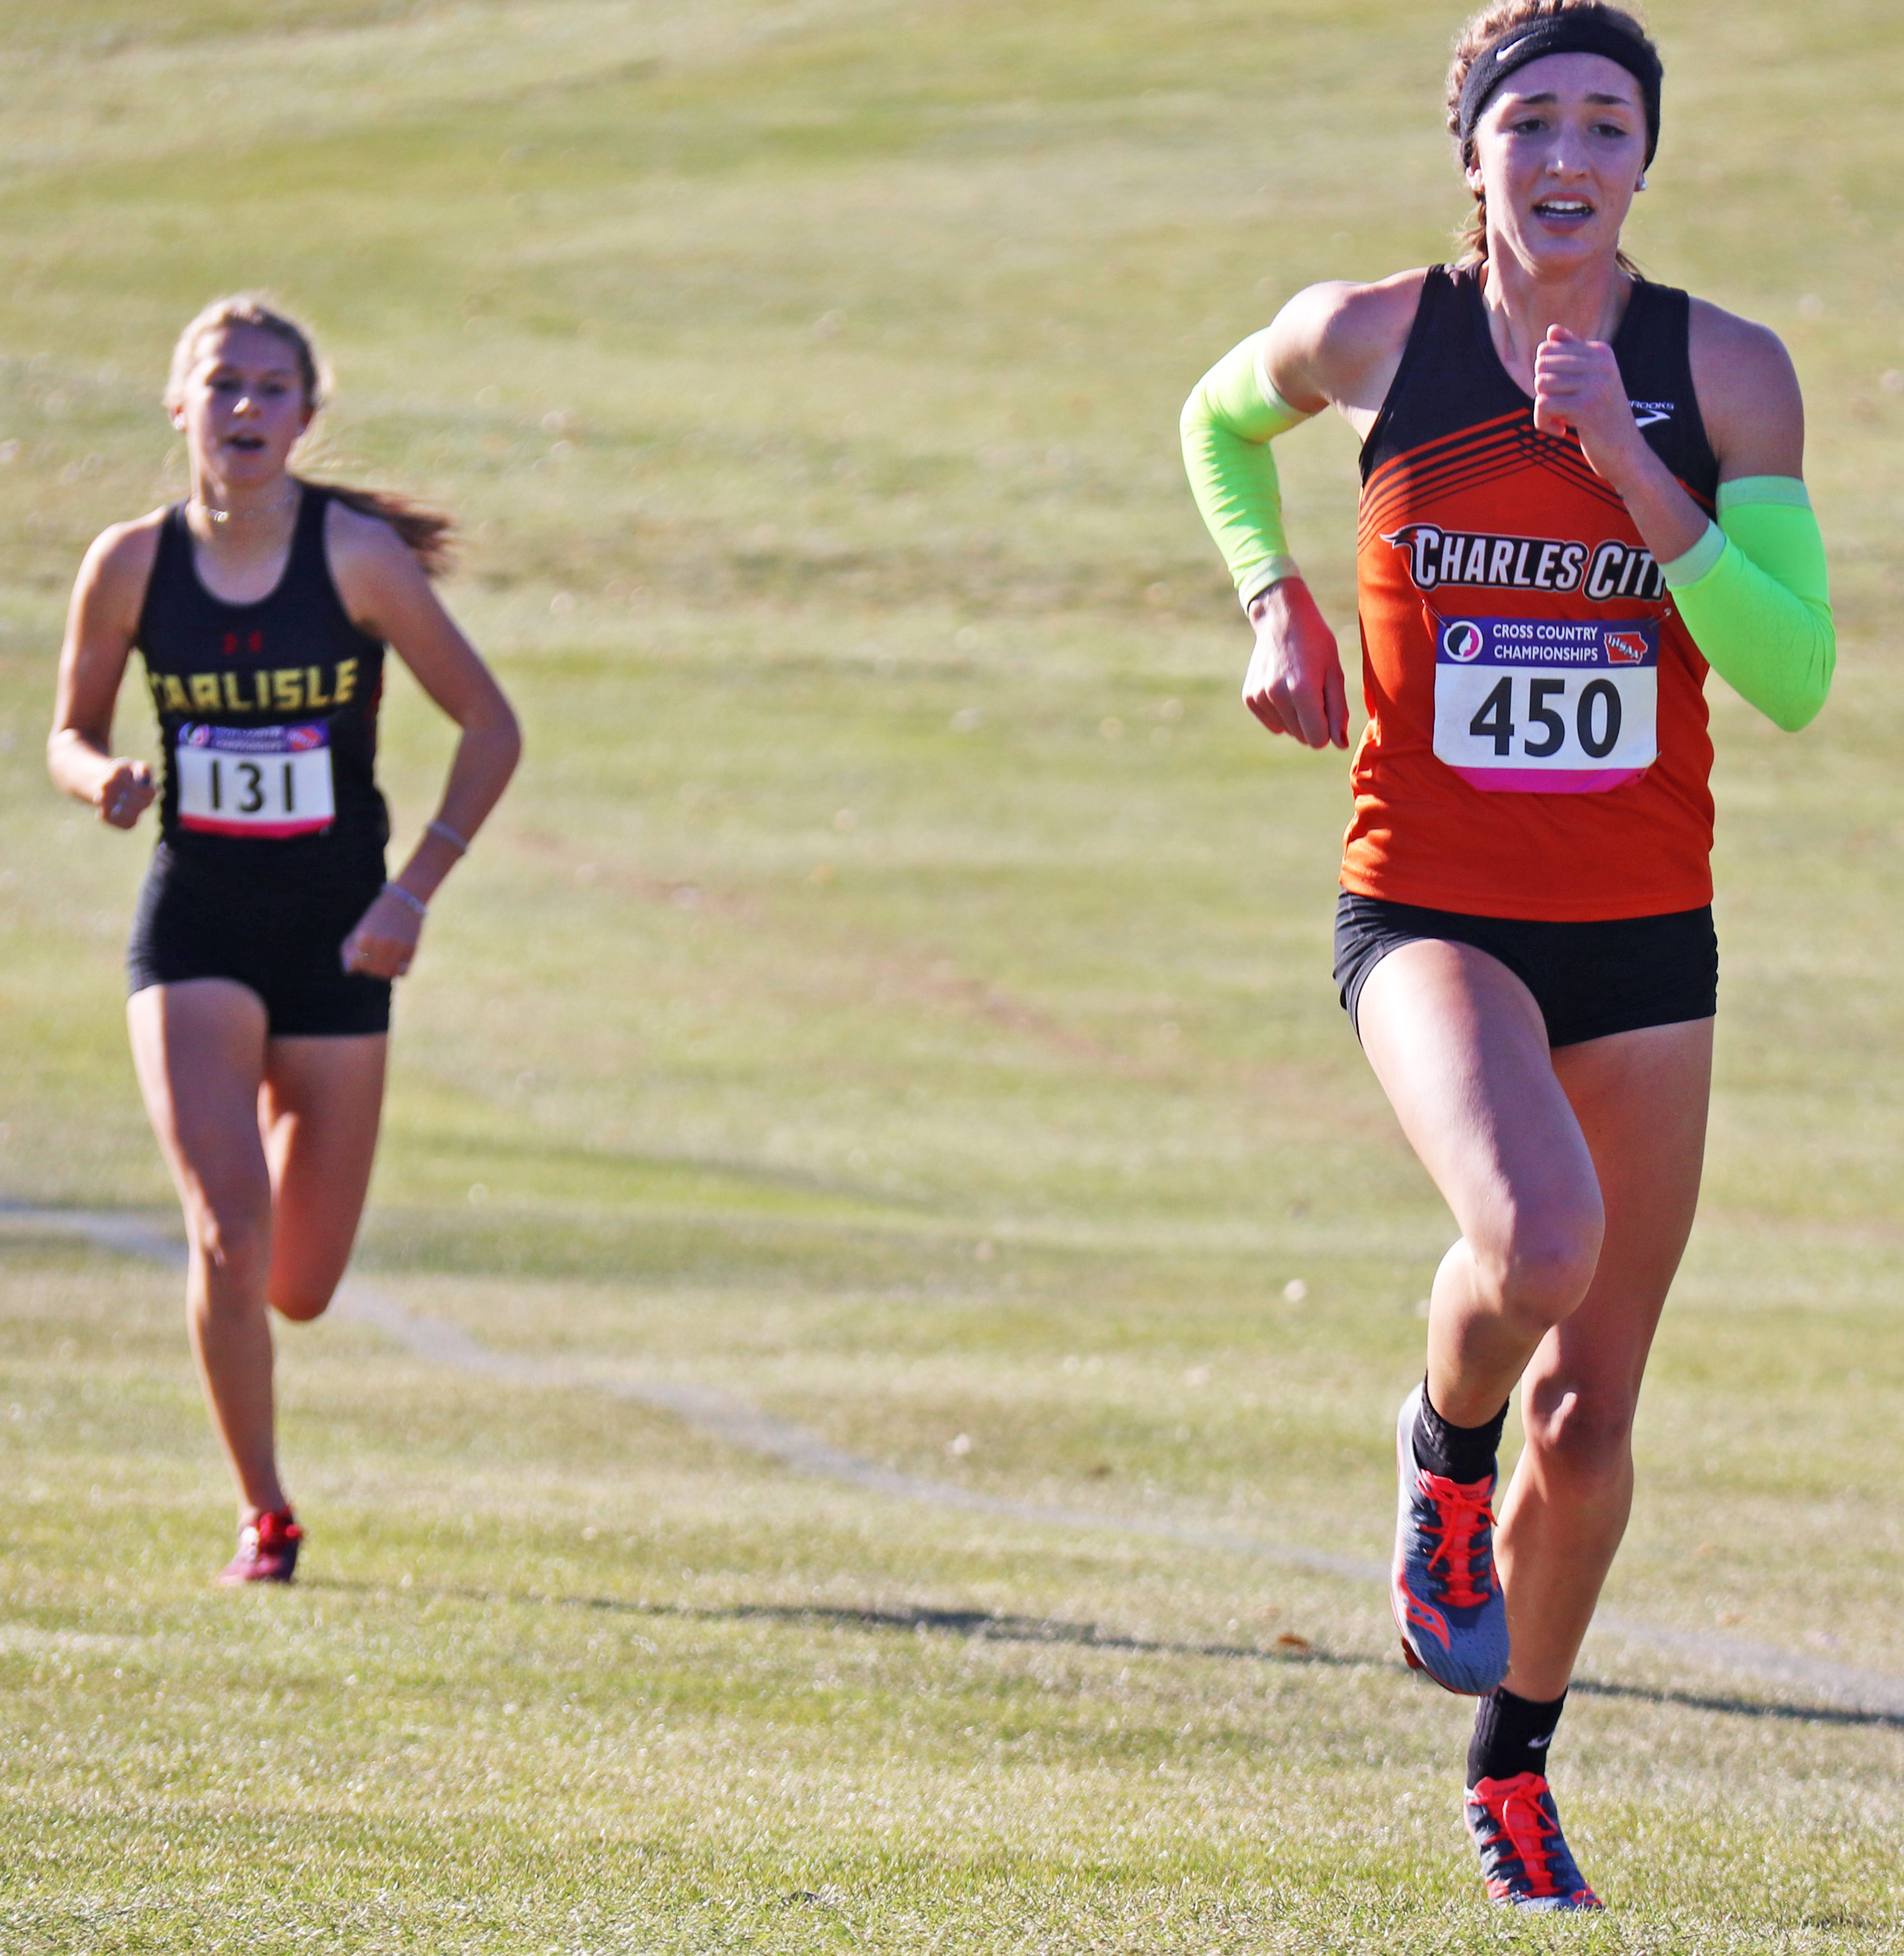 Kiki Connell 4th at State Cross Country Championships